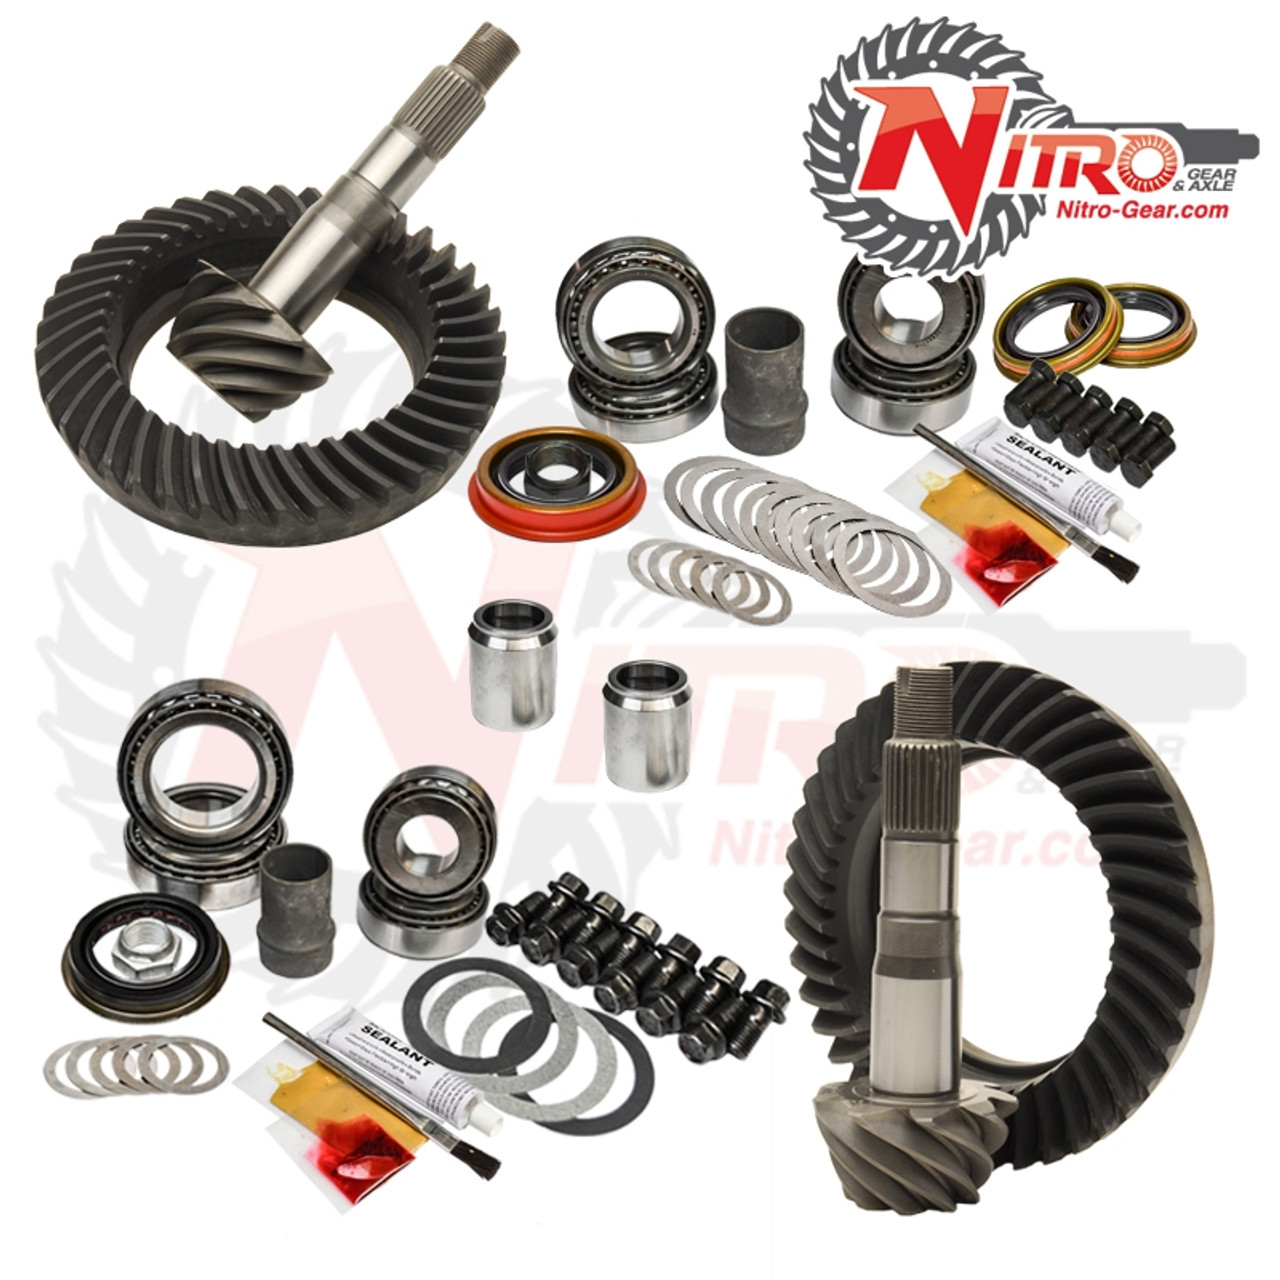 03-09 Toyota FJ Cruiser 4Runner J120 Hilux 4.30 Ratio Gear Package Kit Nitro Gear and Axle